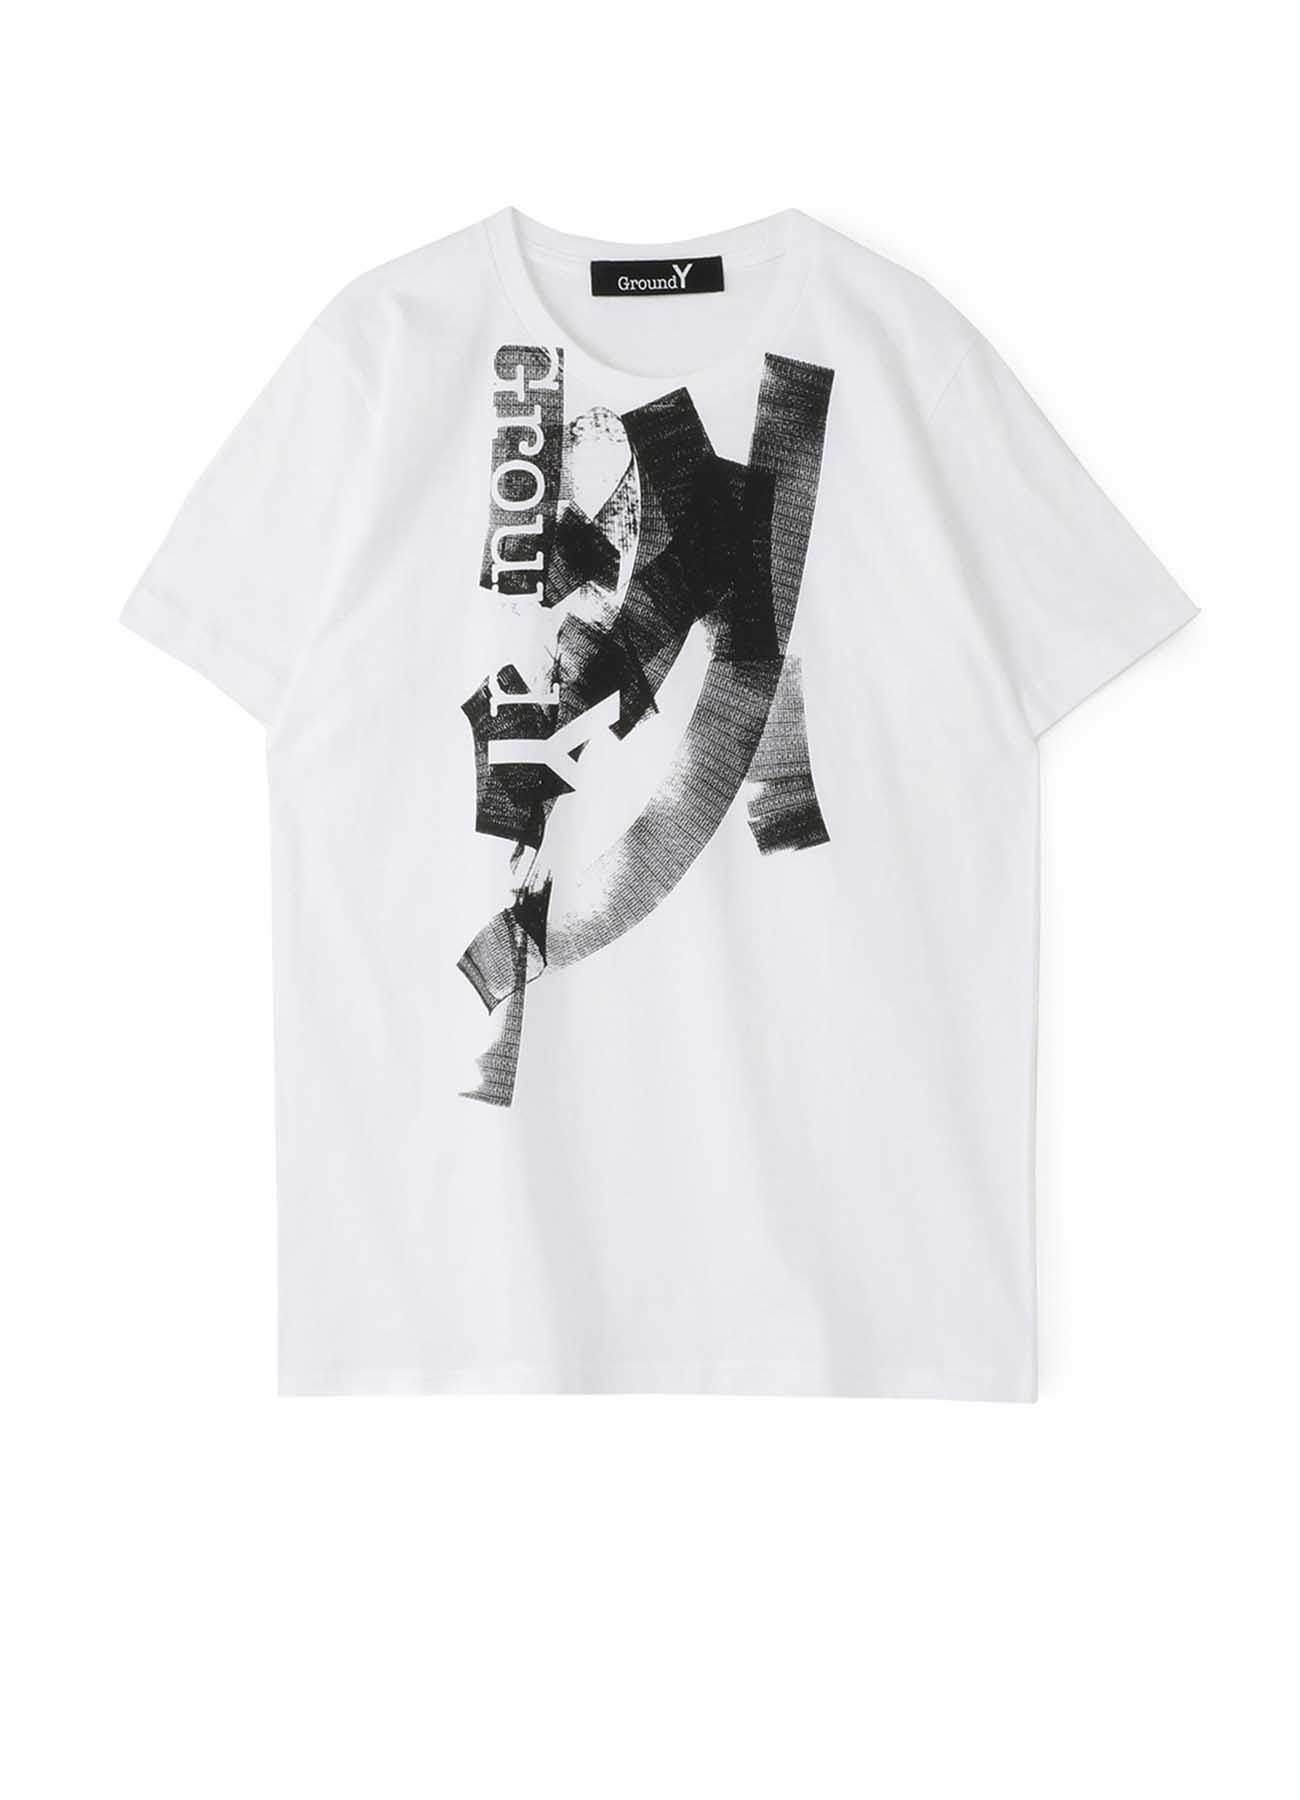 5.0oz cotton Roller graphic T